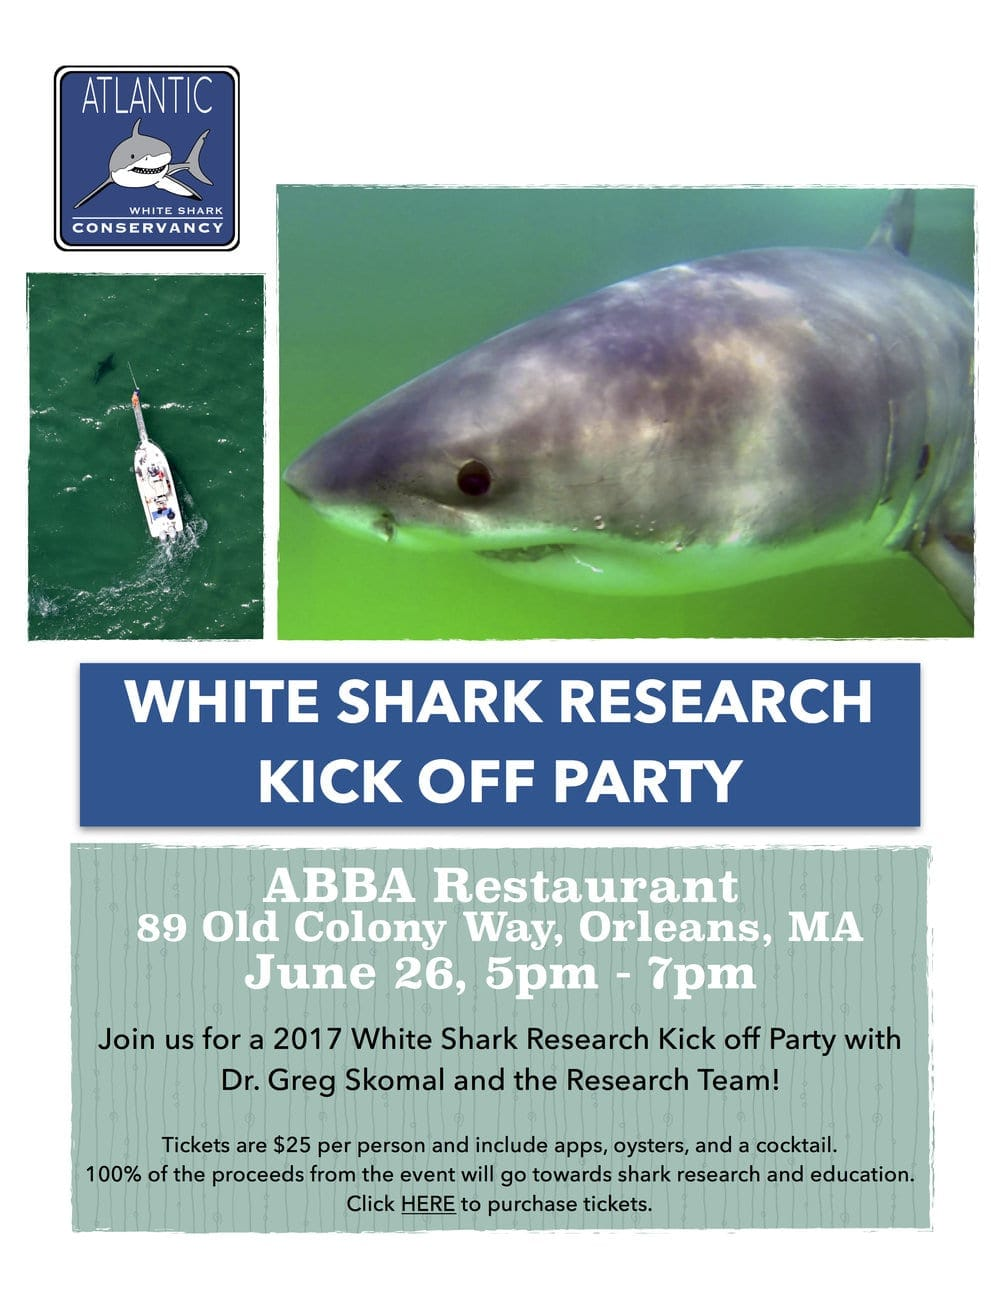 White Shark Research Kick Off Party